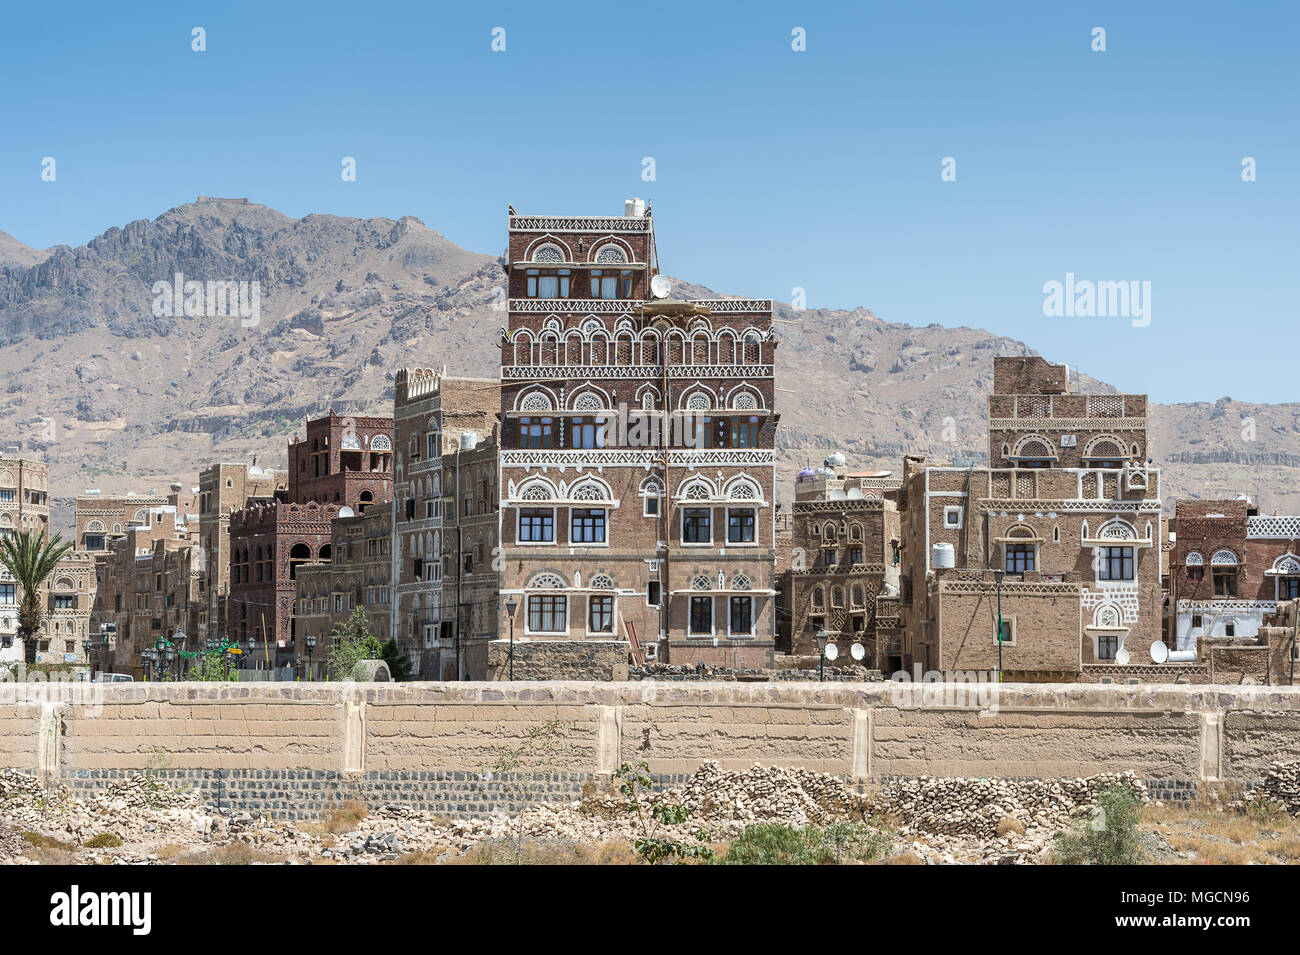 Architecture of Sana'a, the capital of Yemen. - Stock Image